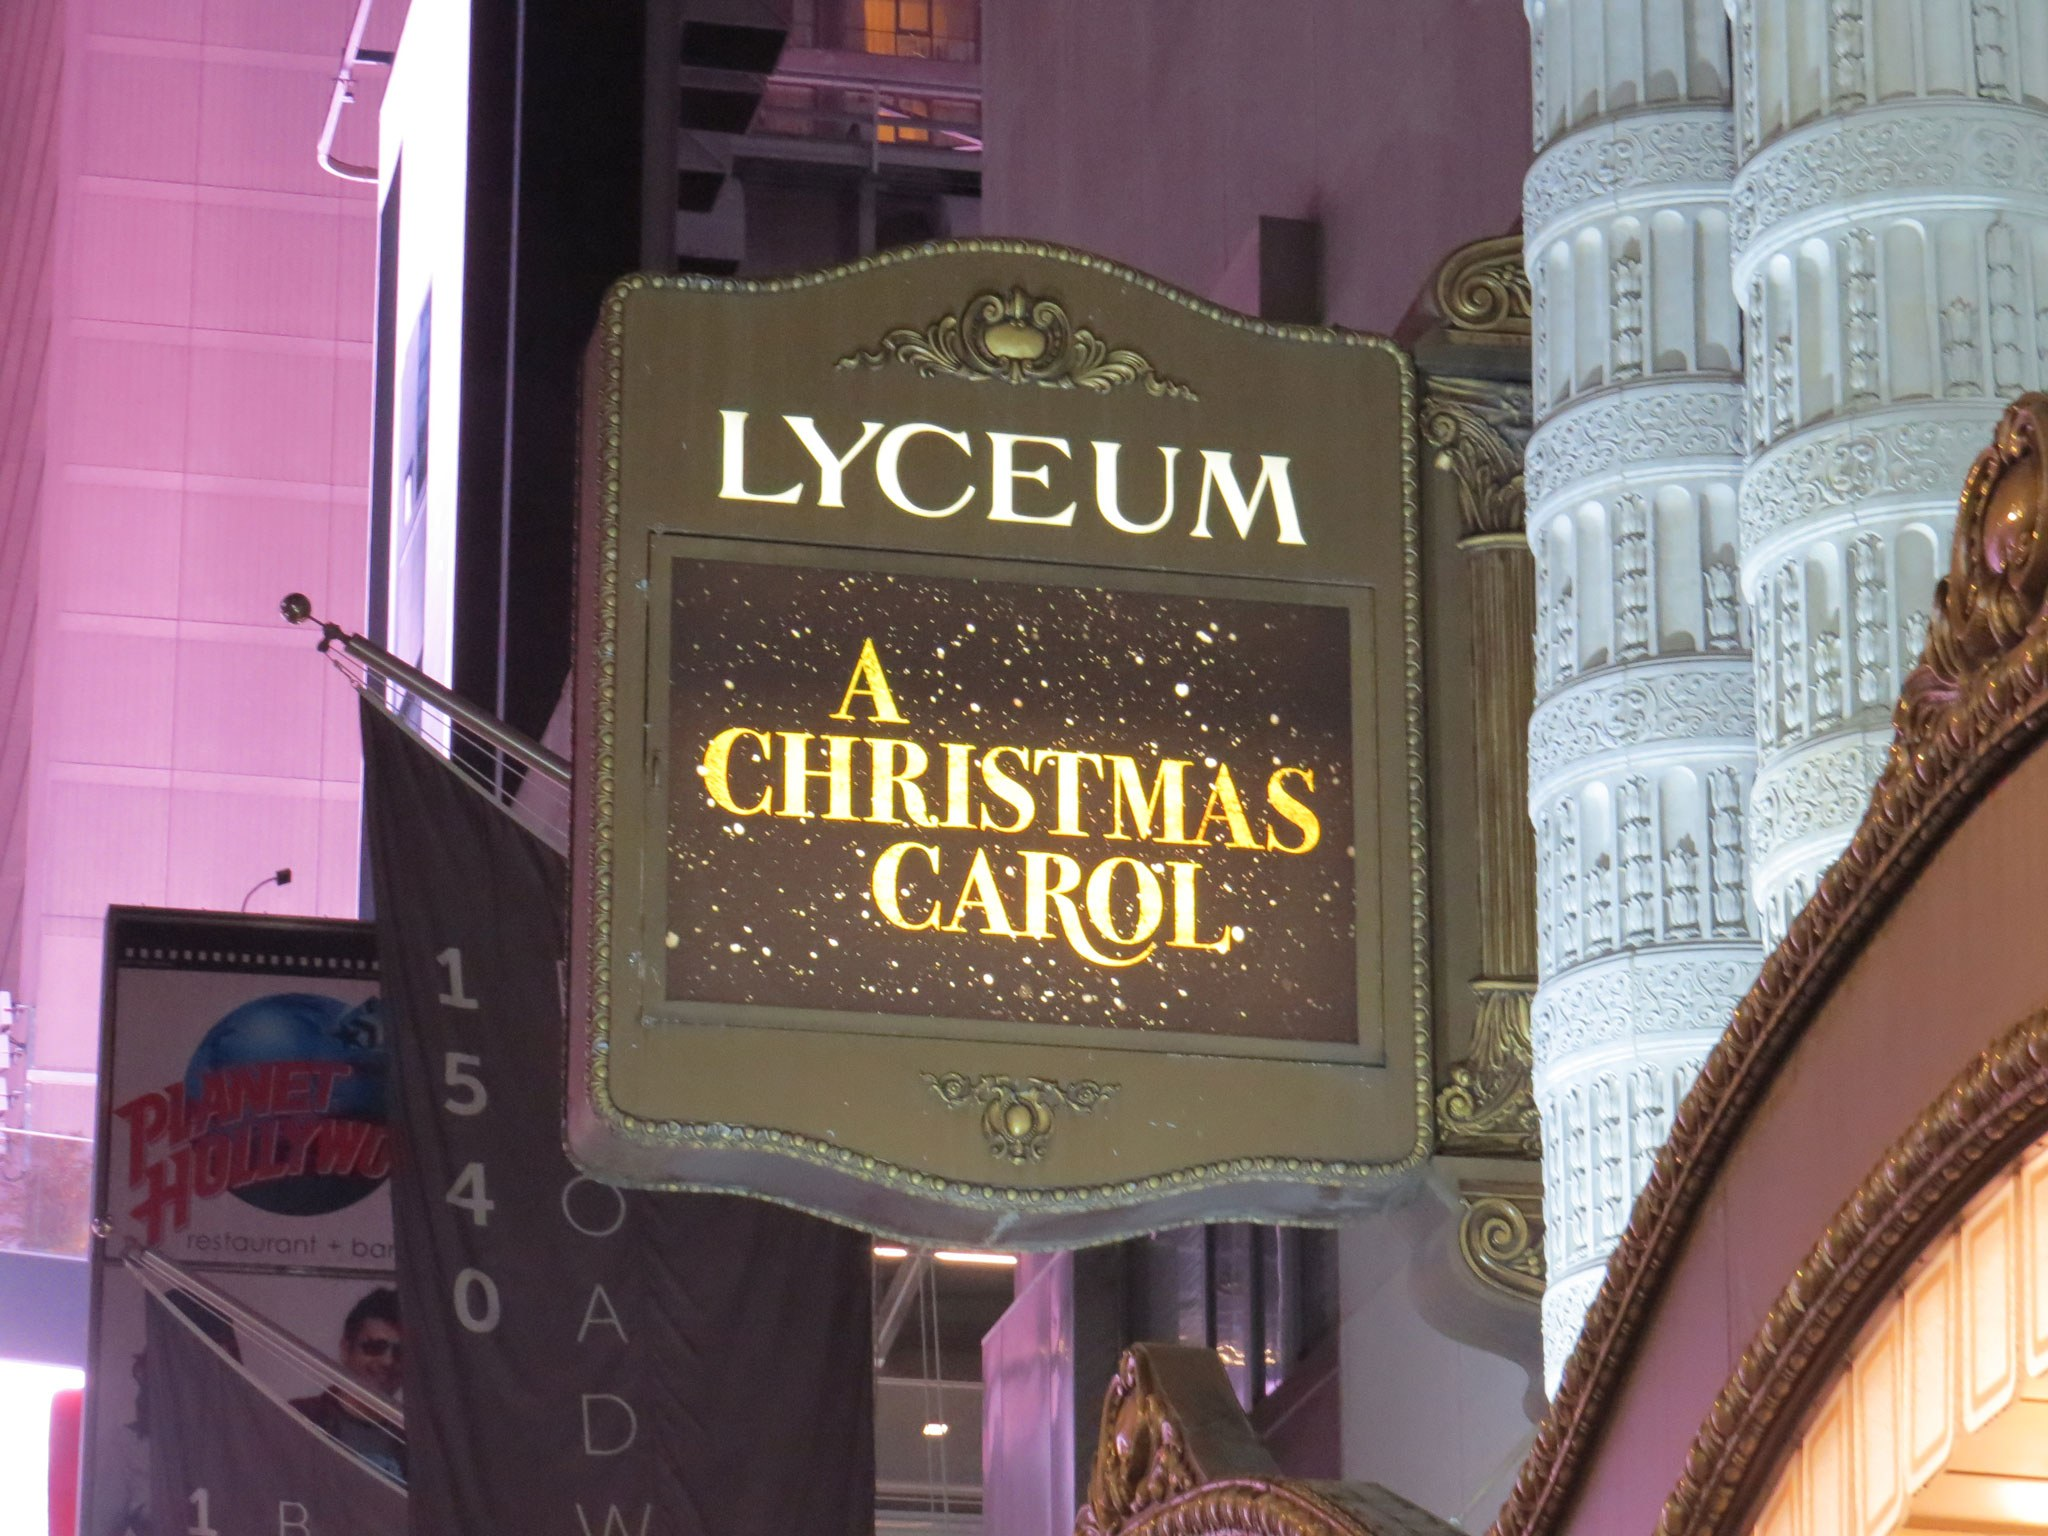 A Christmas Carol Broadway Theatre Marquee